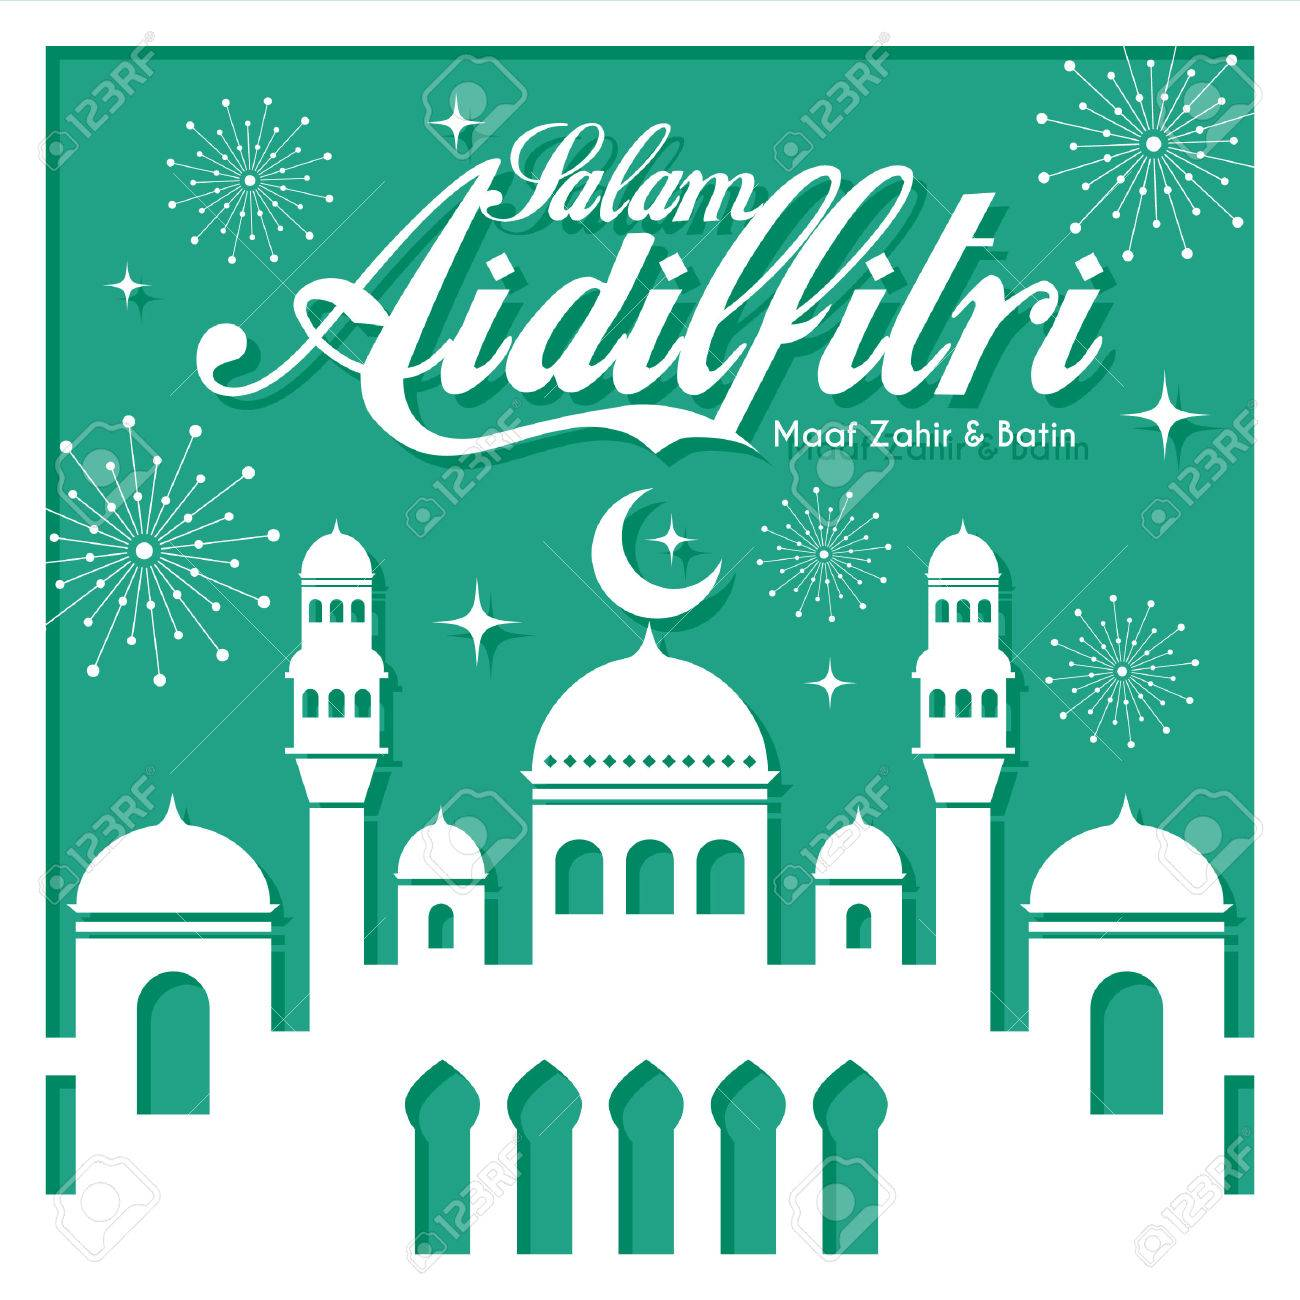 hari raya aidilfitri greeting card template design vector mosque and fireworks in paper cut style